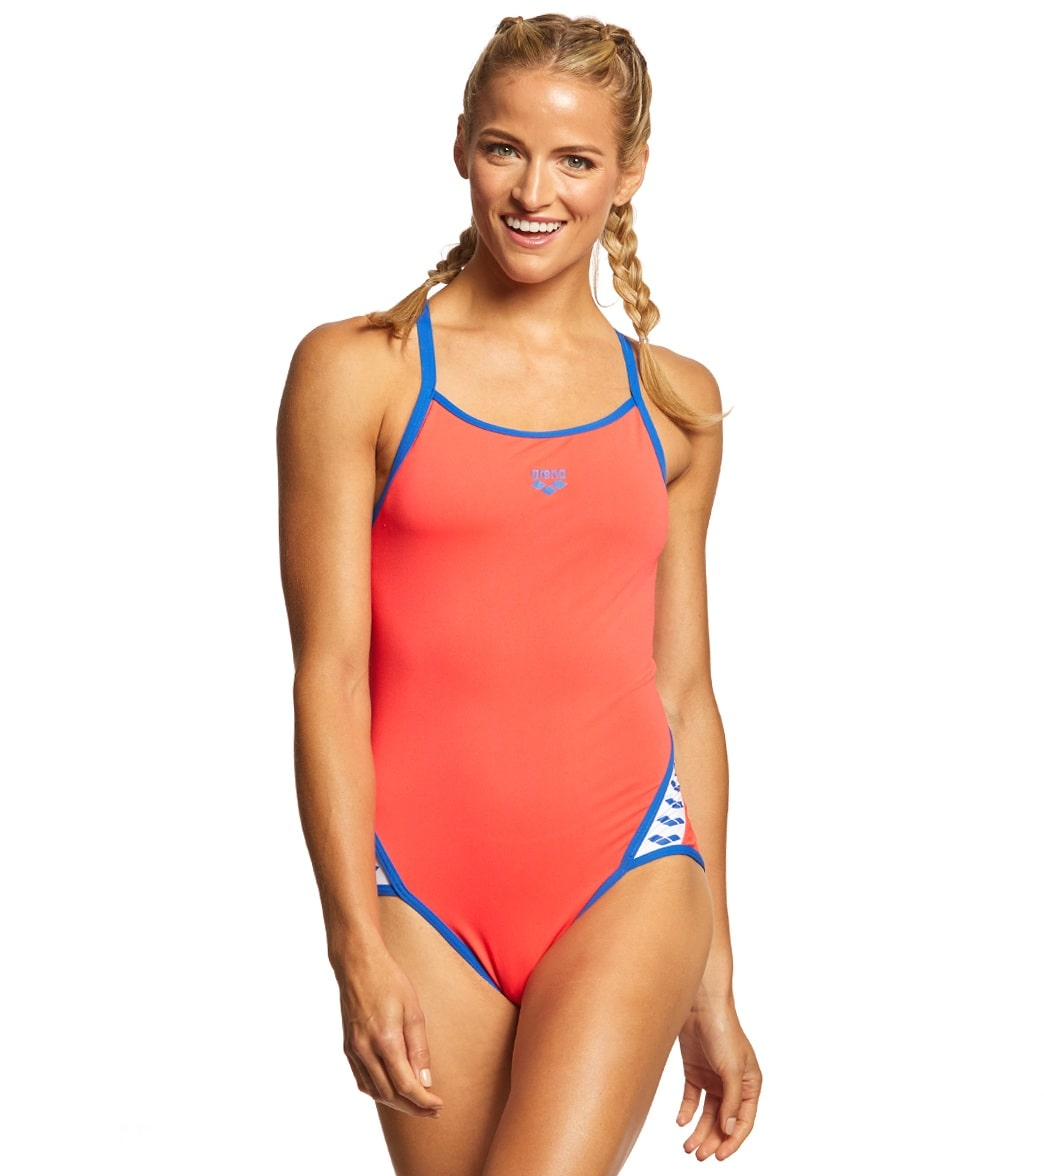 914aa3deab5f6 Arena Women's Team Stripe MaxLife SuperFly Back One Piece Swimsuit at  SwimOutlet.com - Free Shipping